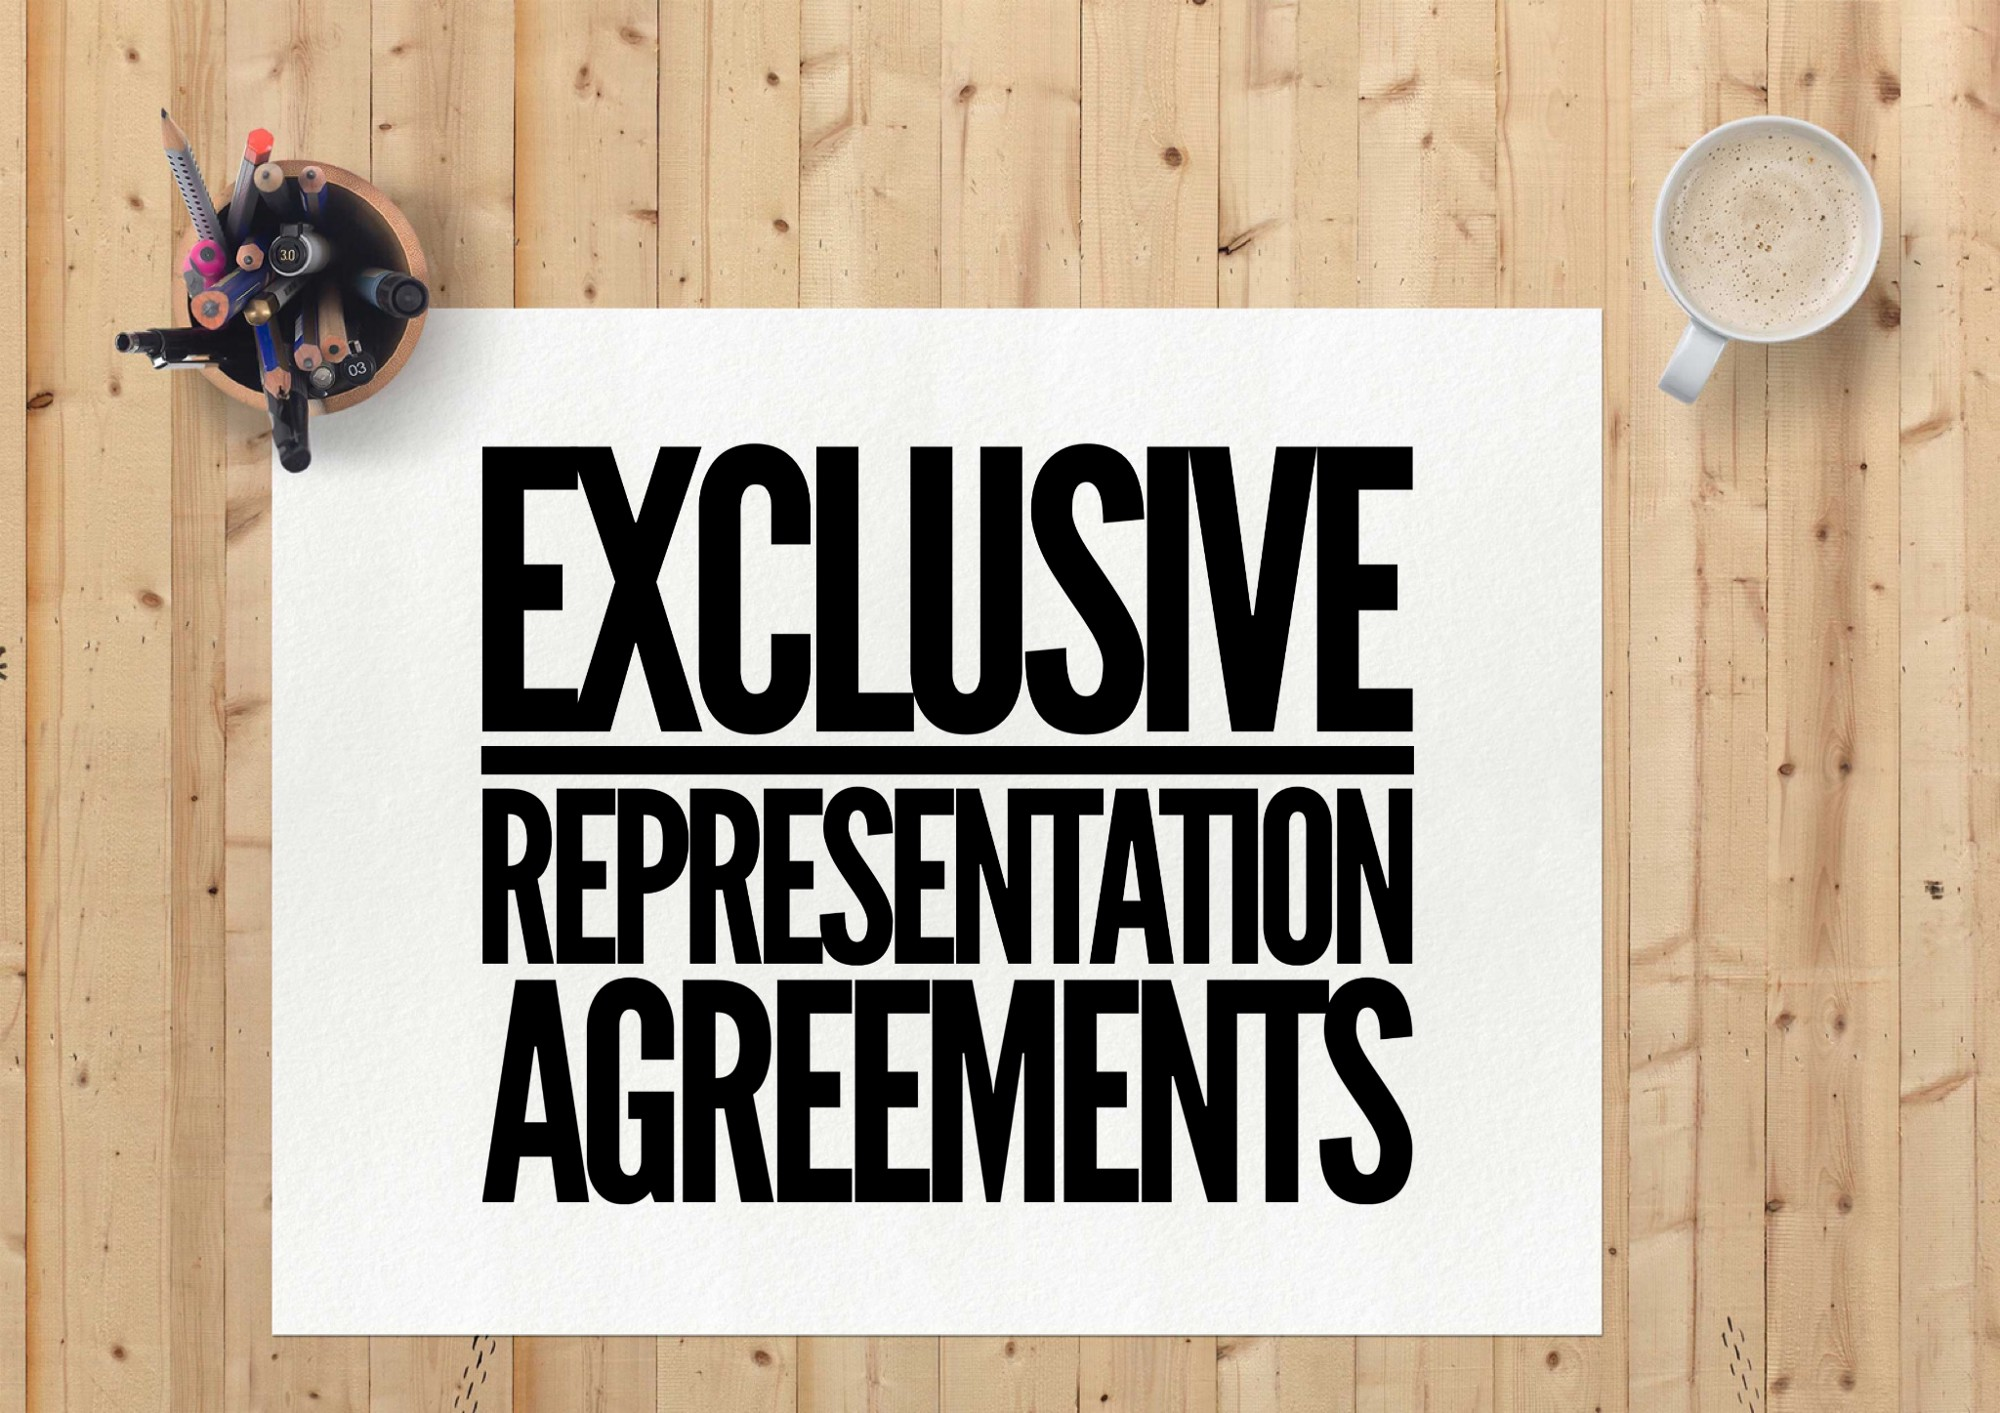 Exclusive Representation Agreements In Real Estate Jason Cassity